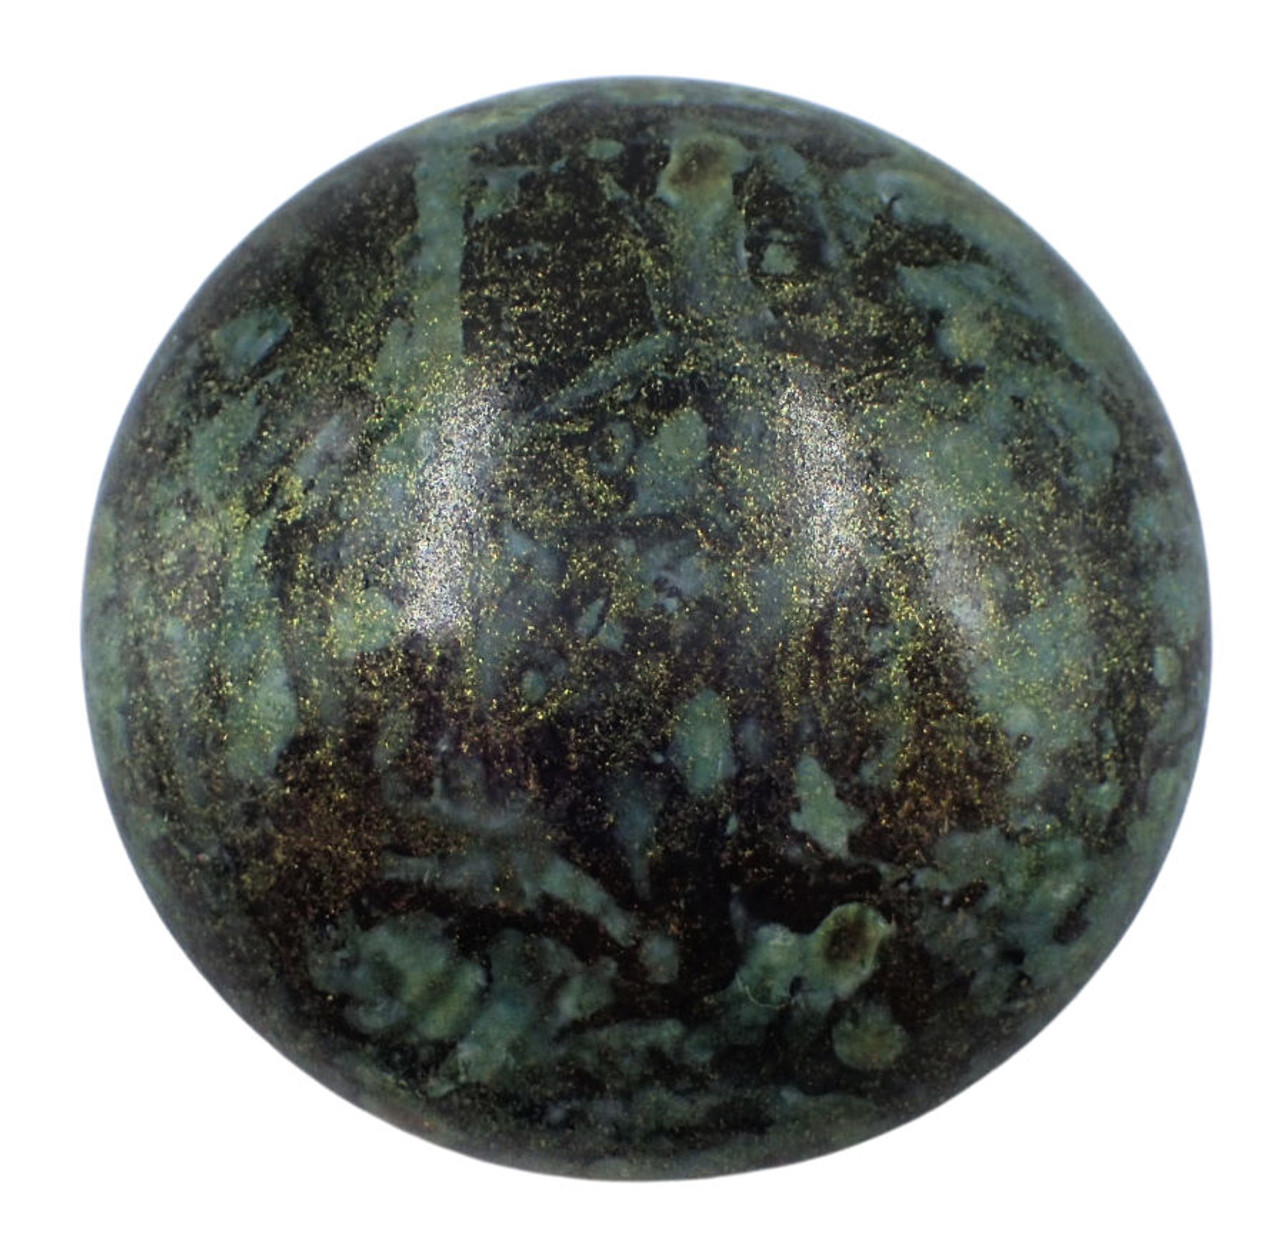 25mm Metallic Matte Green Spotted Par Puca Cabochon (1 Piece) #23980/65326